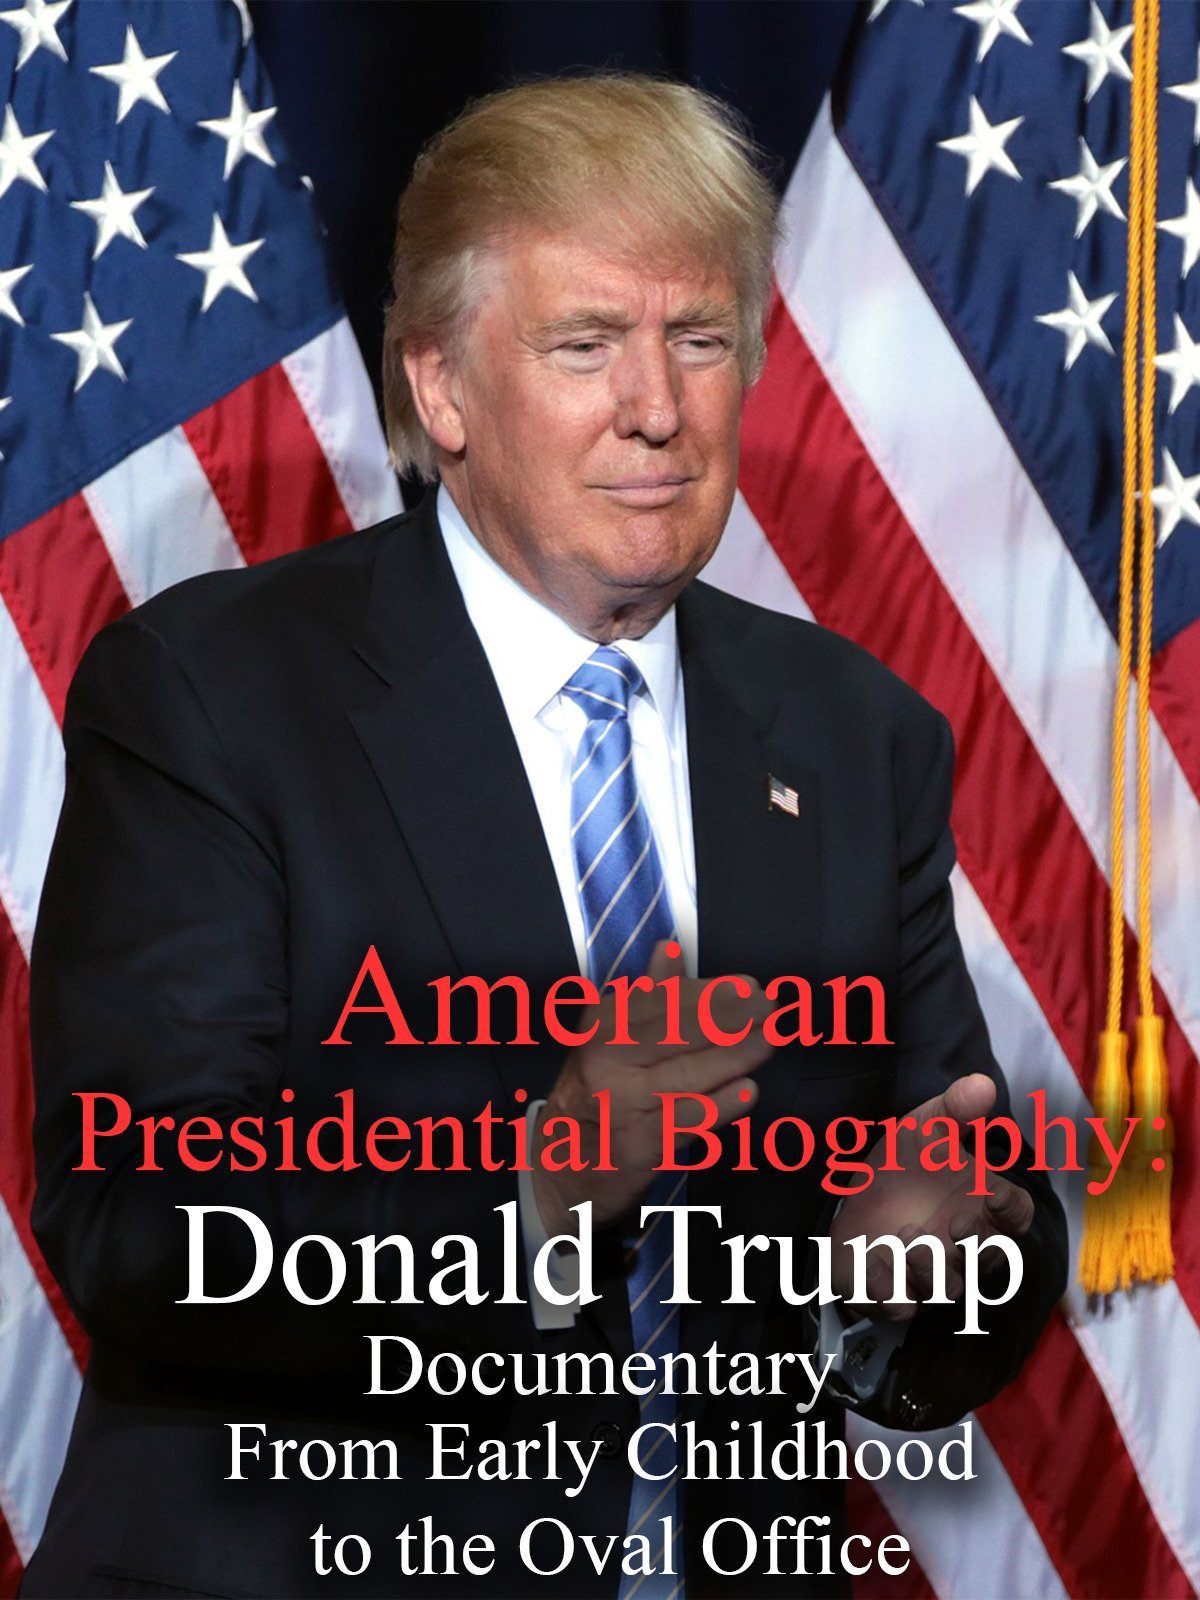 American Presidential Biography: Donald Trump Documentary From Early Childhood to the Oval Office